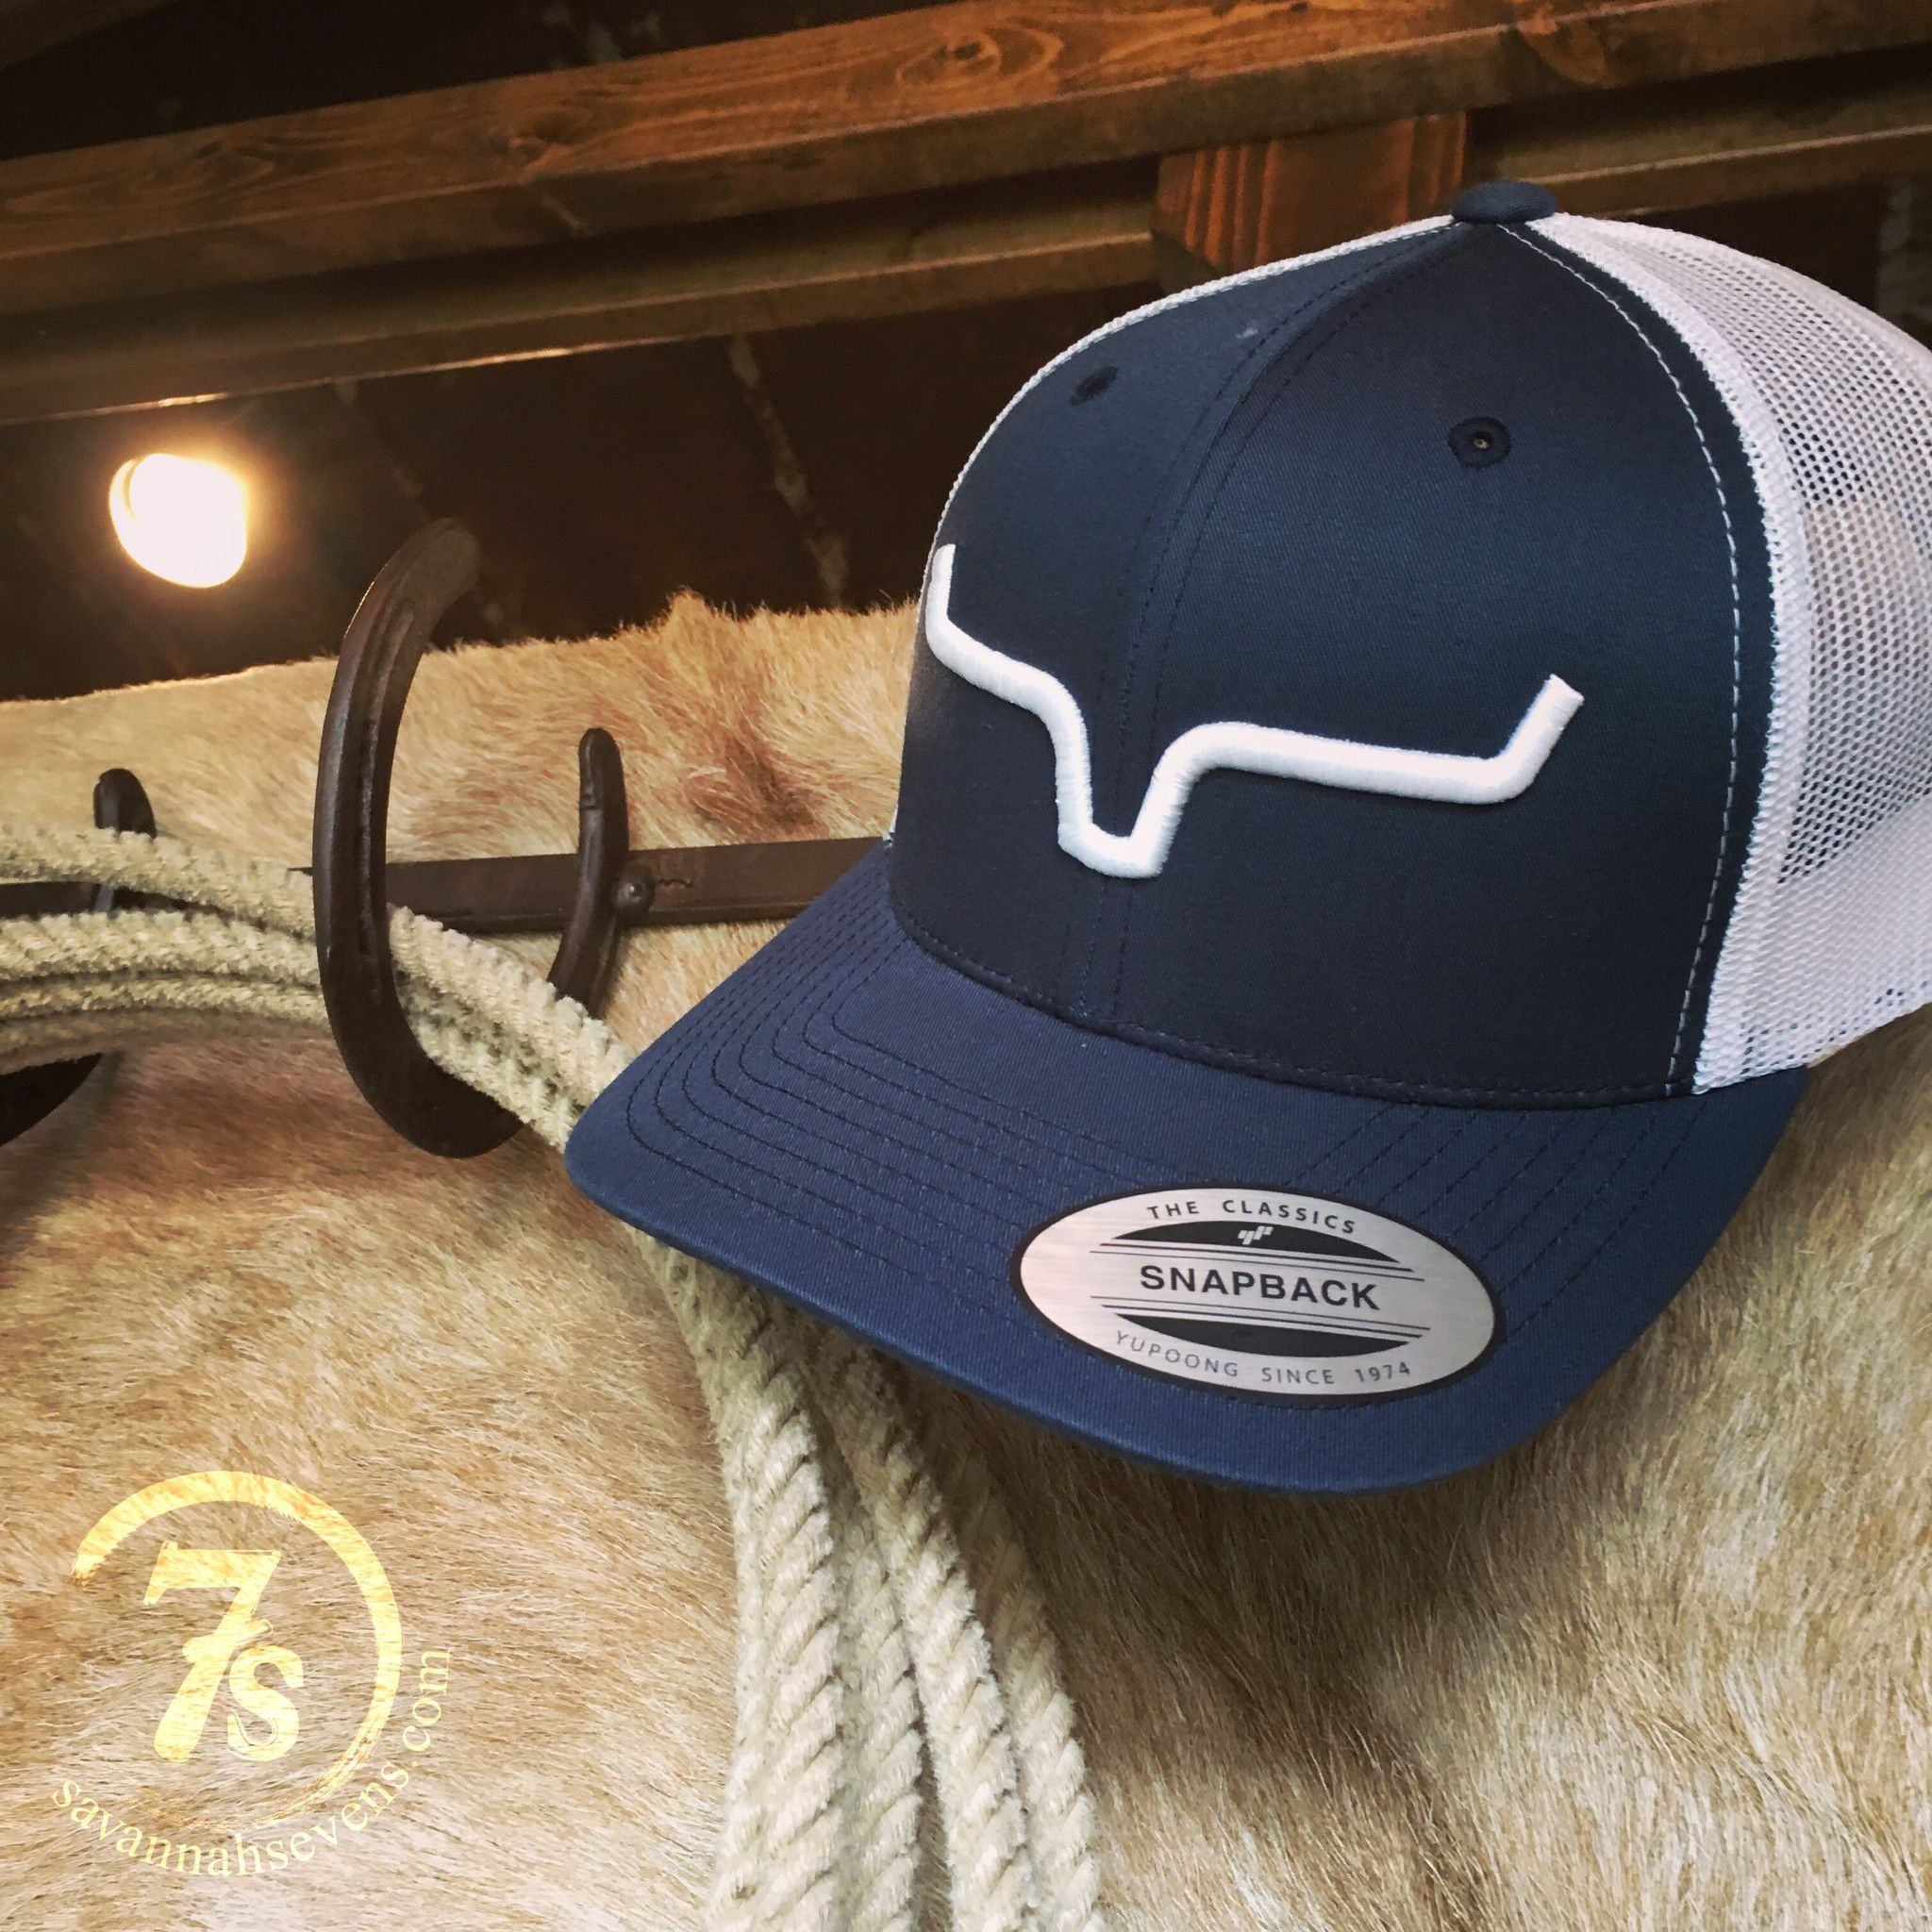 5c4b3846c Kimes Ranch cap - Navy and White - White 3-D embroidered Kimes horns logo -  Adjustable snap back - Mesh back - Flexible brim